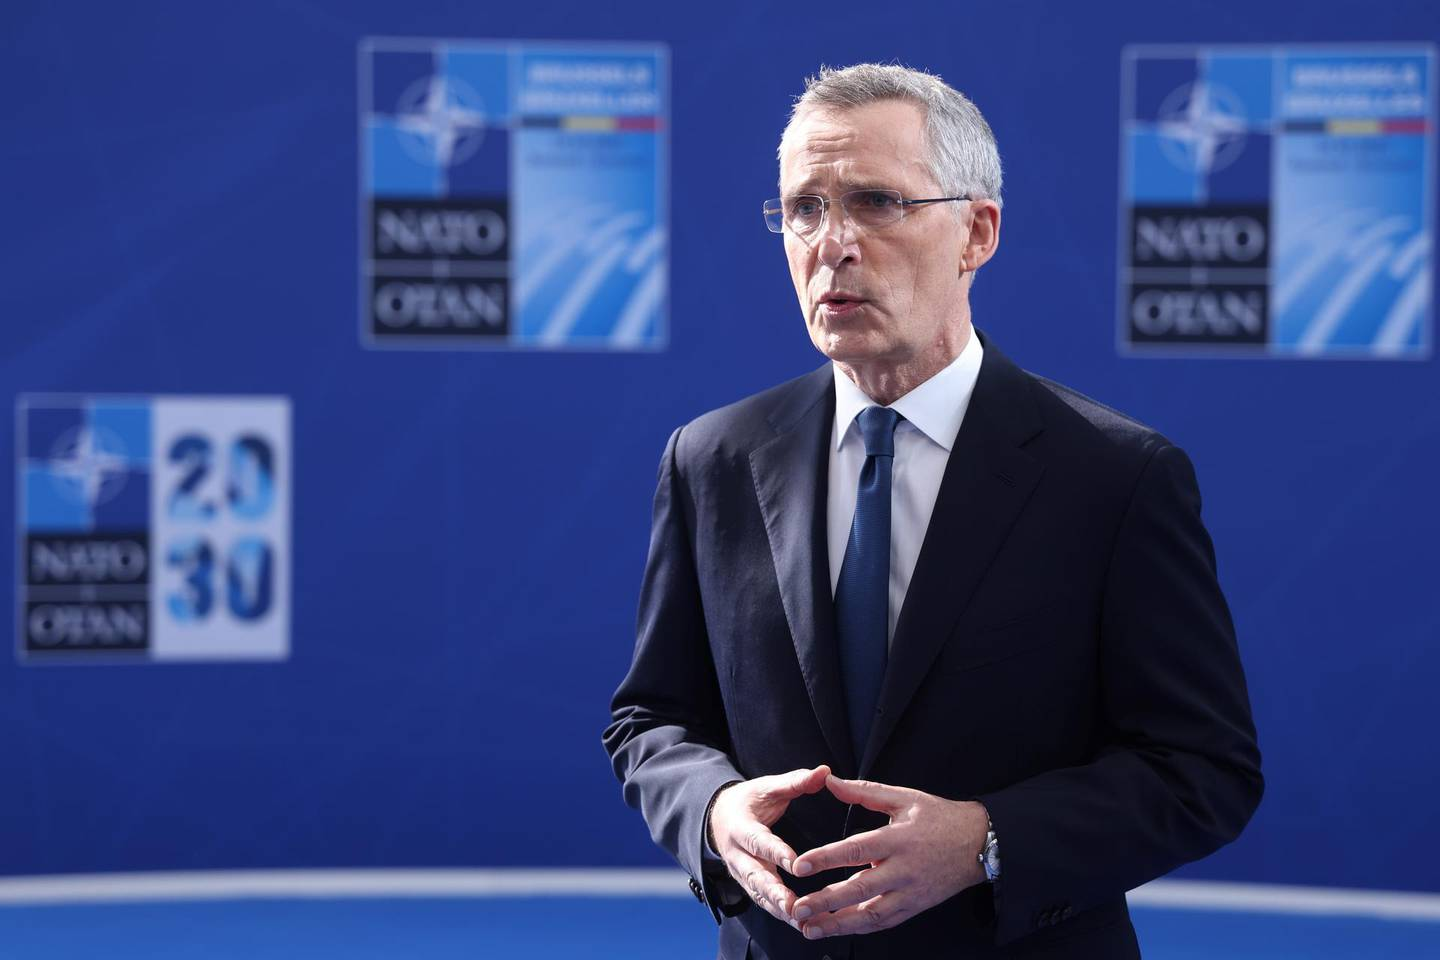 epa09269382 NATO Secretary General Jens Stoltenberg speaks to the press prior to a NATO summit at the North Atlantic Treaty Organization (NATO) headquarters in Brussels, Belfium, 14 June 2021. The allies meet to agree a statement stressing common ground on securing their withdrawal from Afghanistan, joint responses to cyber attacks and relations with a rising China.  EPA/KENZO TRIBOUILLARD / POOL